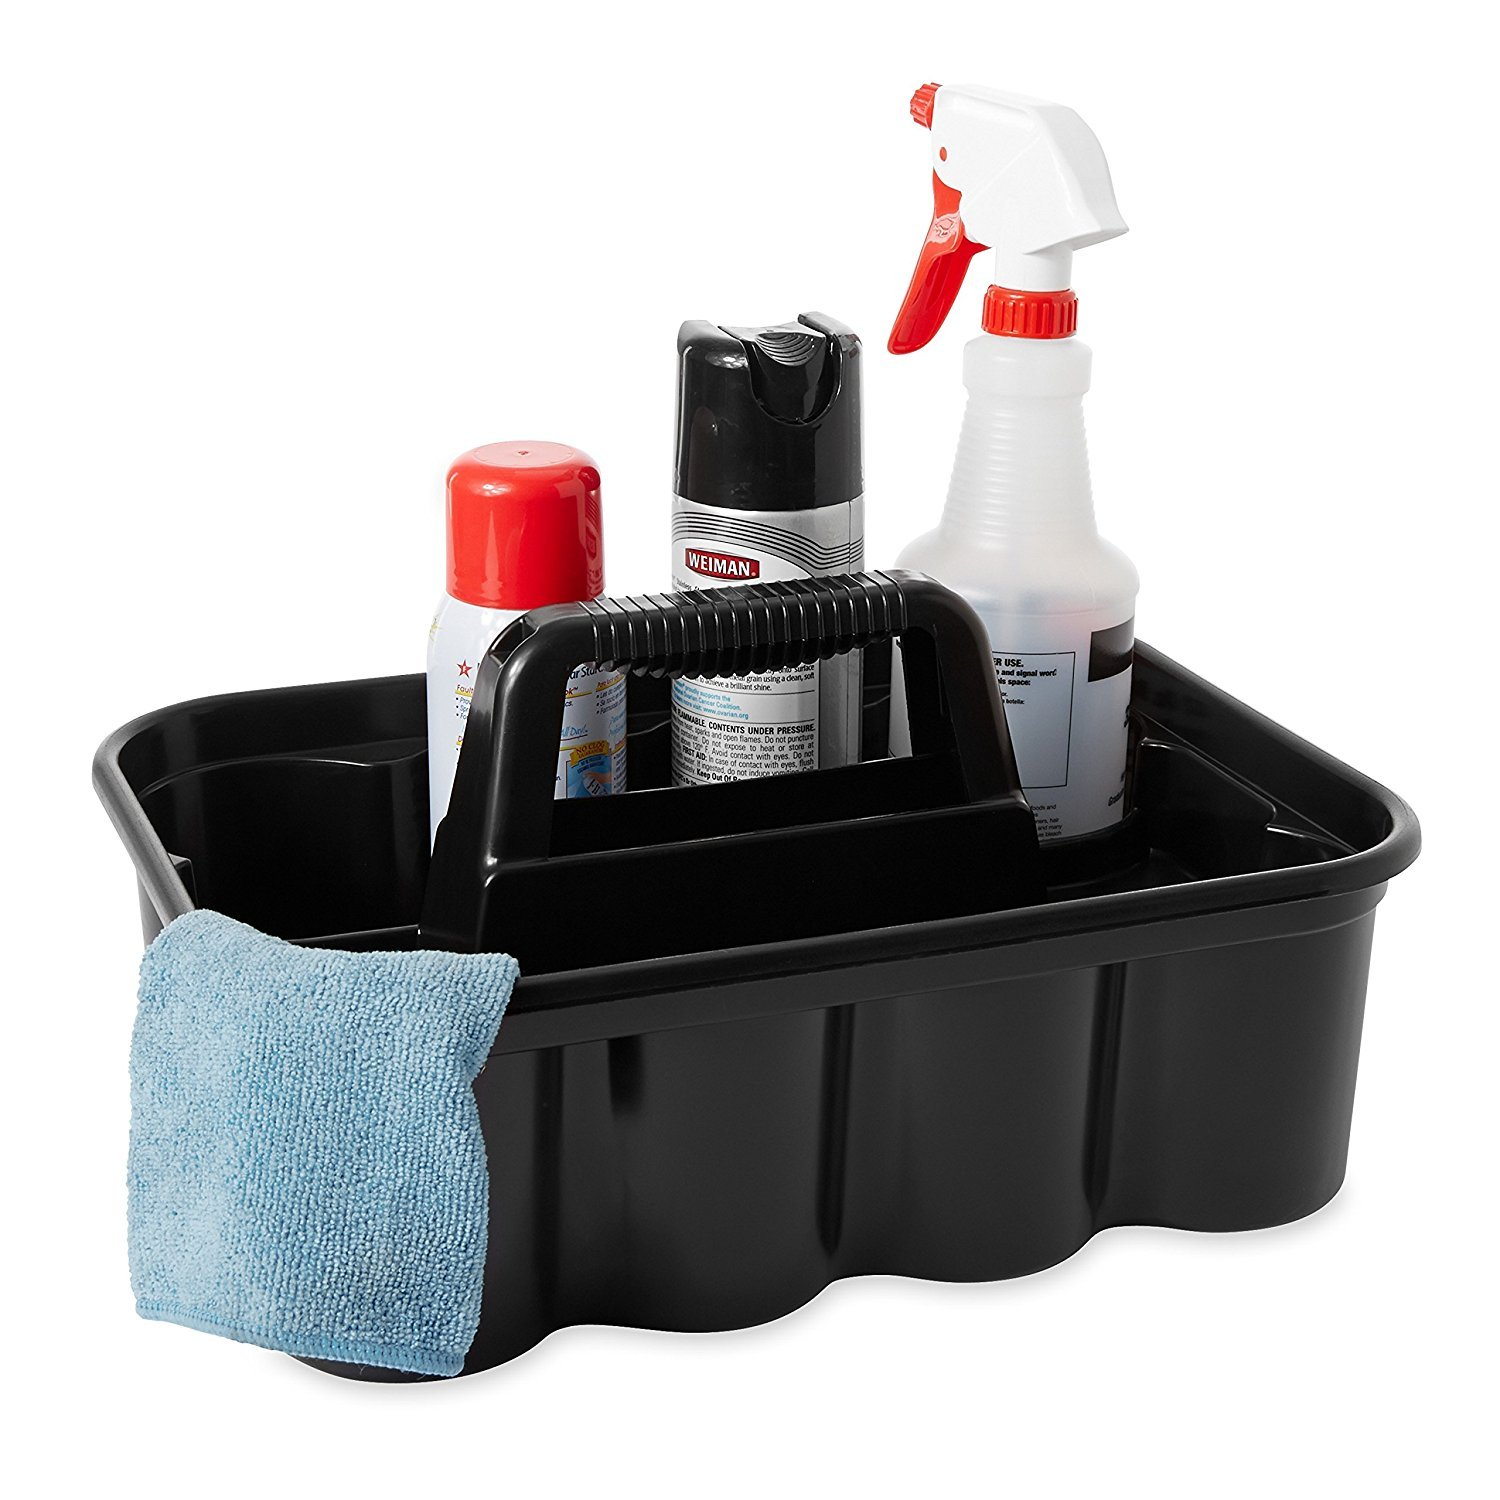 Deluxe Carry Cleaning Caddy, Black (FG315488BLA) by RubbermaidComercialProducts (Image #4)